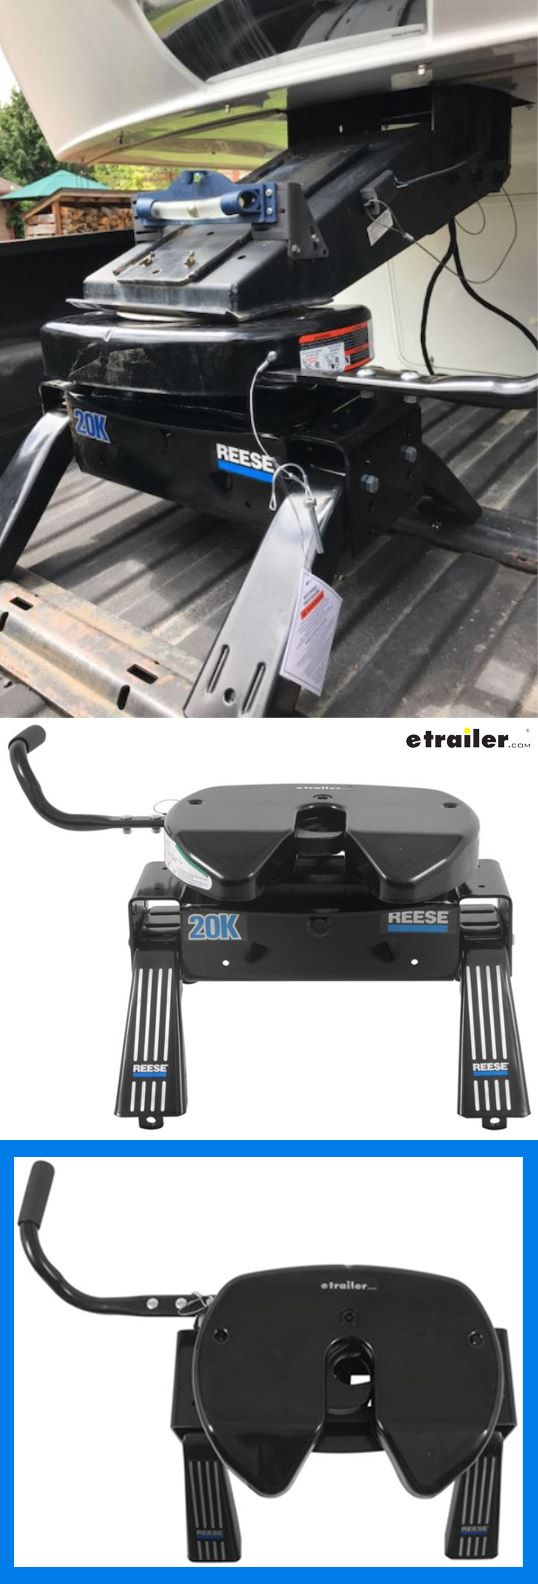 Tow your fifth wheel camper safely and securely with this Reese Select Plus 5th Wheel Trailer Hitch. Design offers superior jaw-to-king-pin contact for maximum security and minimum rattle